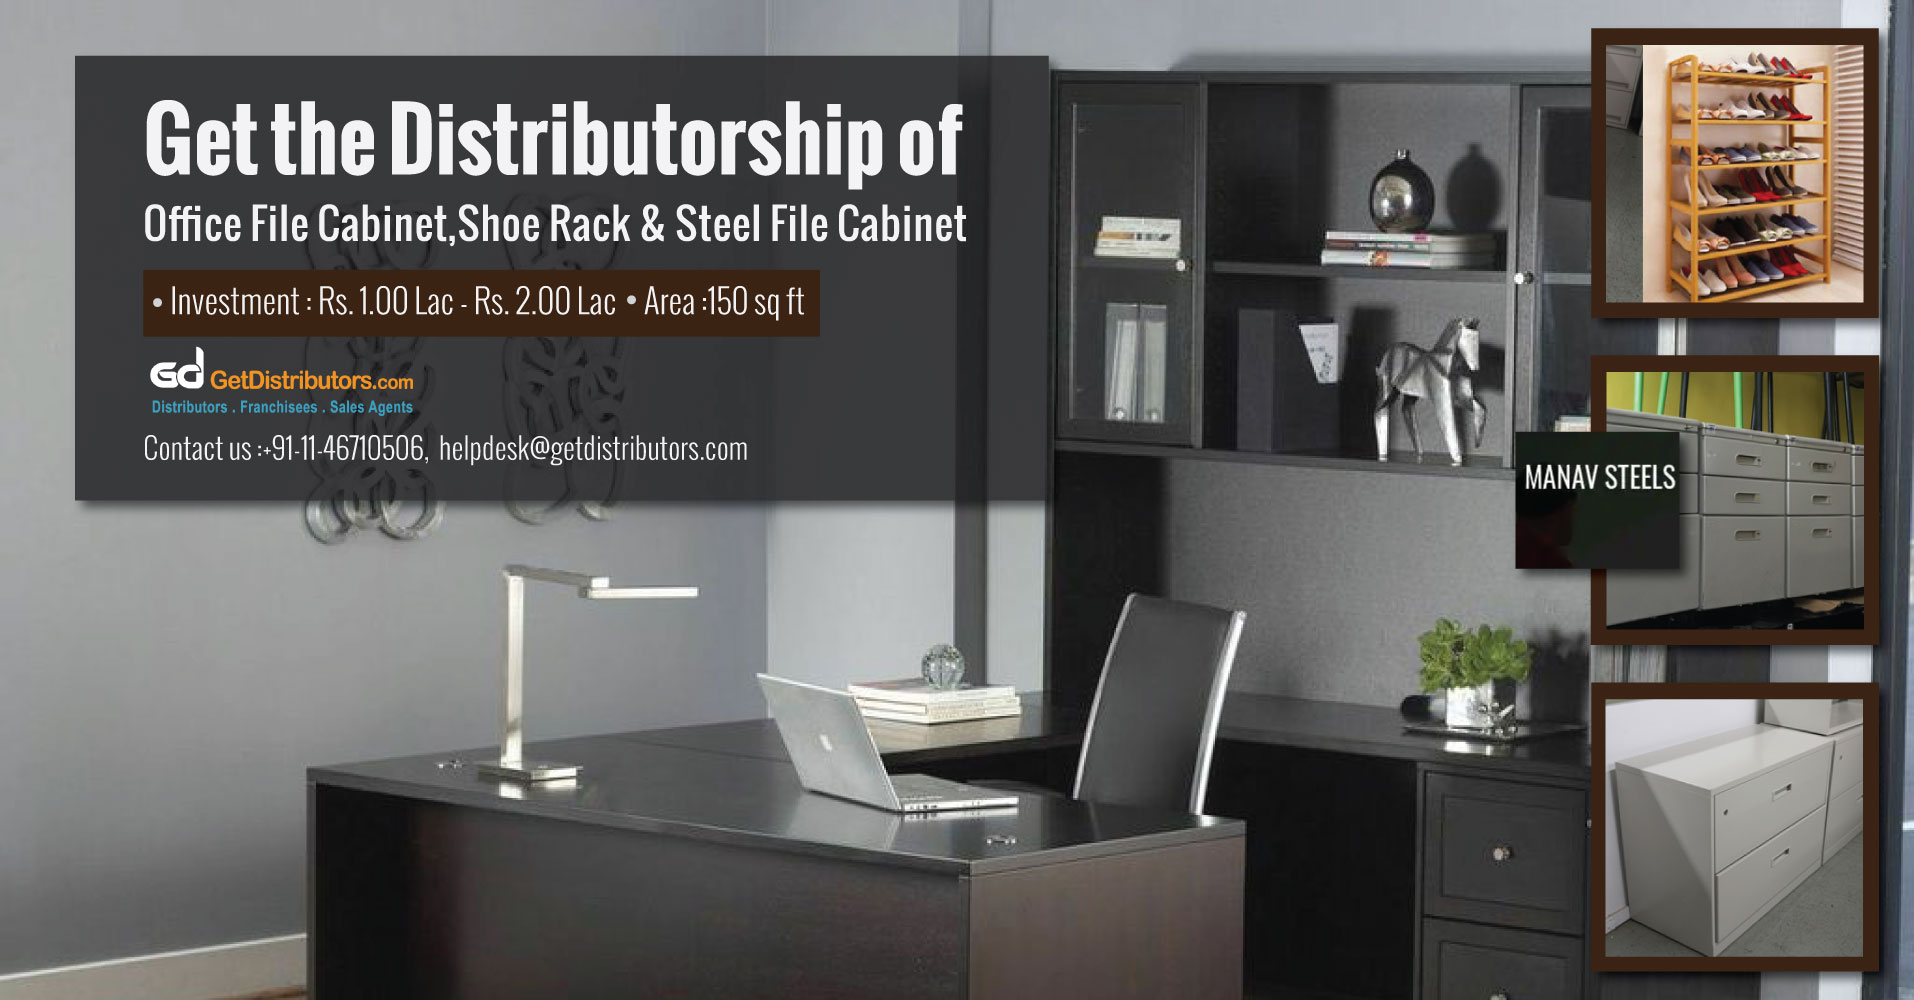 Manav Steels Offers Durable Furniture at Cost Effective Prices